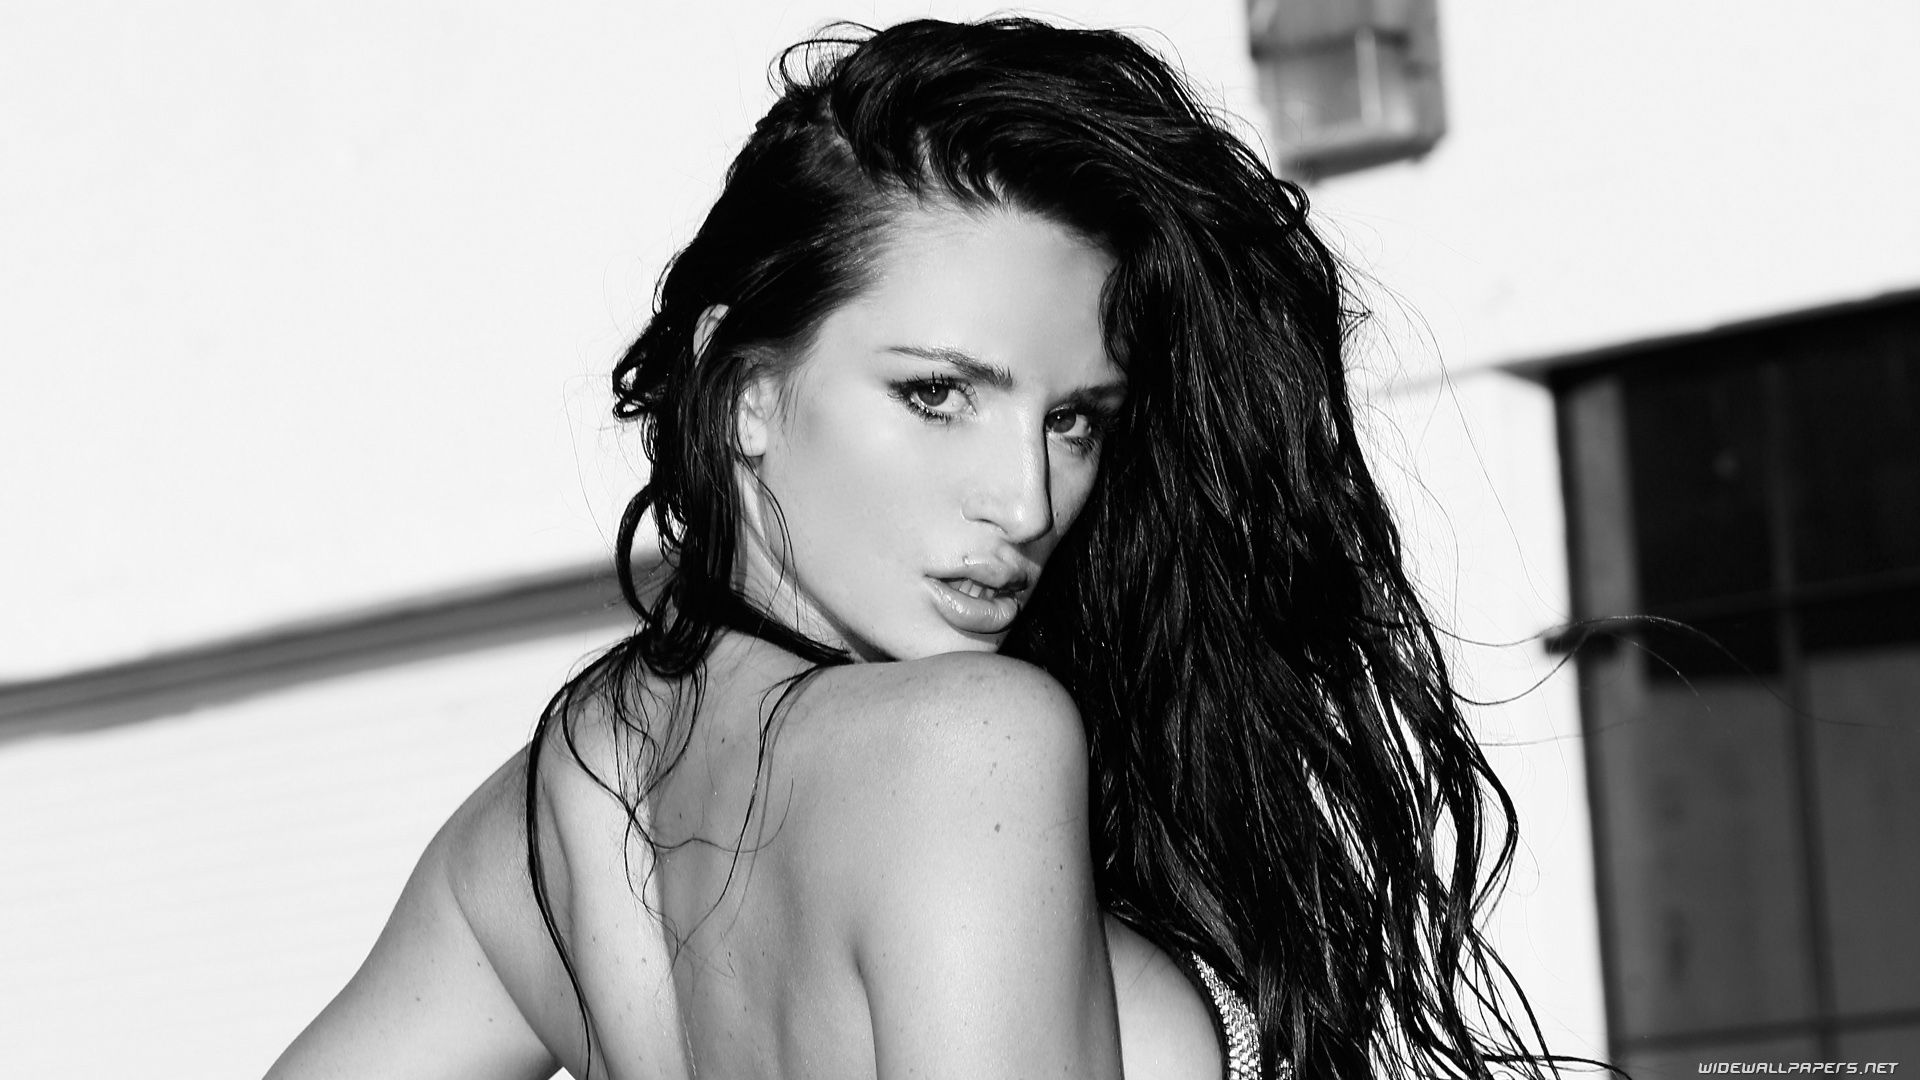 rosie roff celebrity desktop wallpapers hd and wide wallpapers